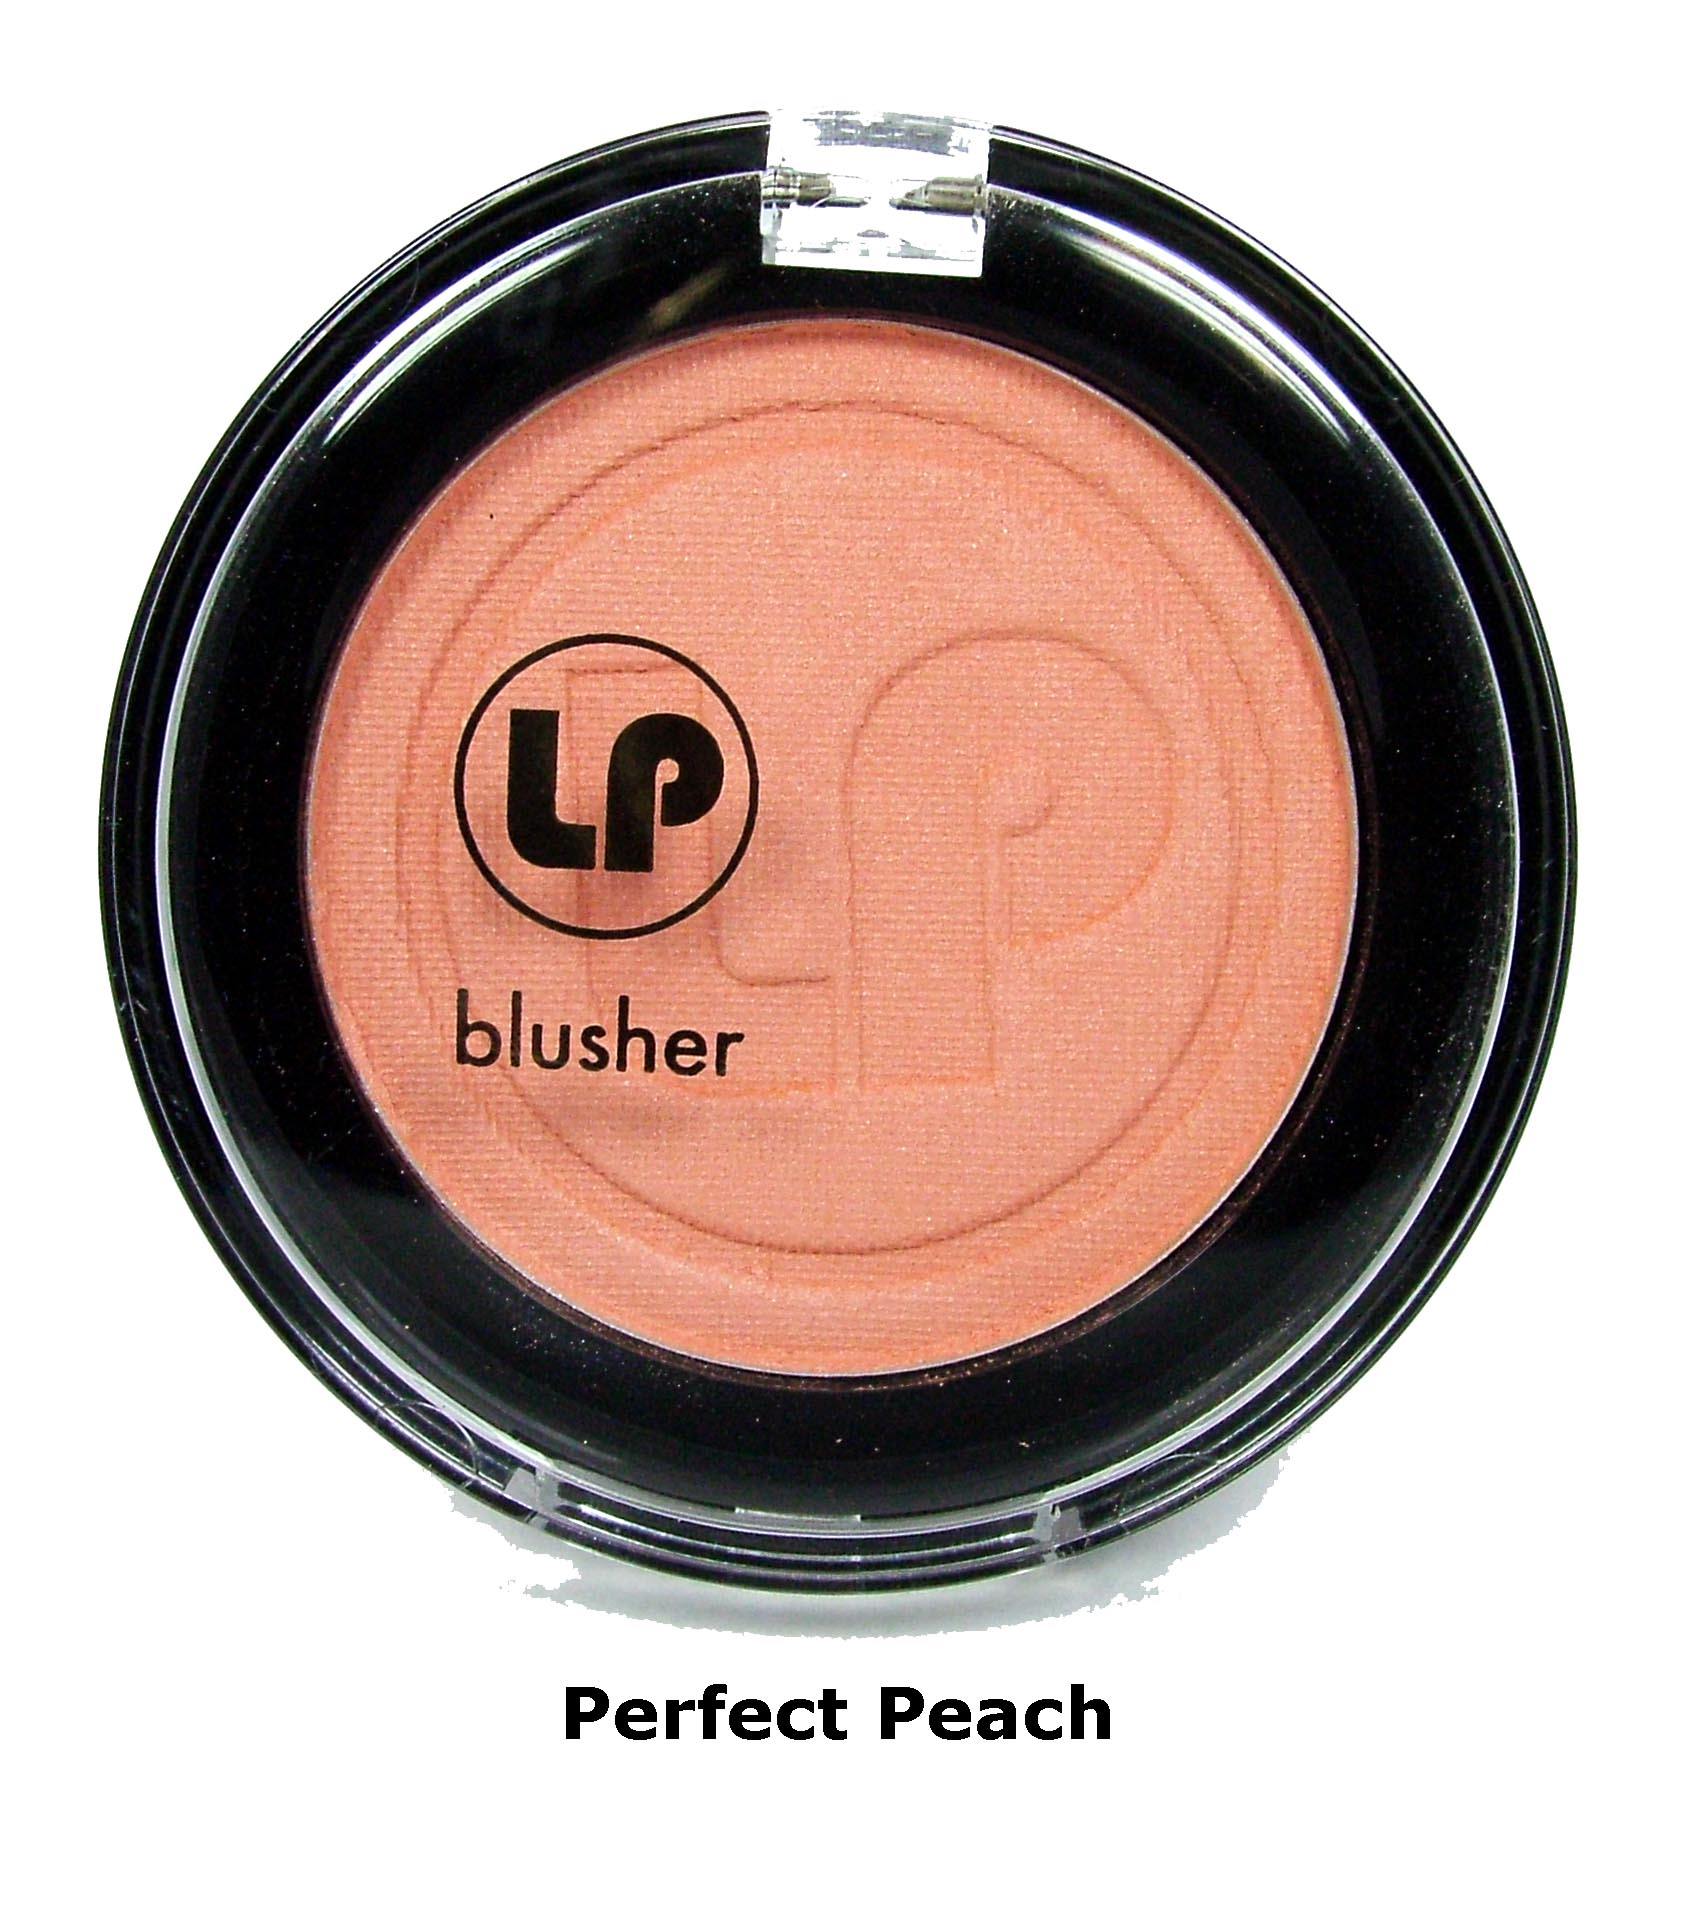 LP Single Blusher Compact - Perfect Peach